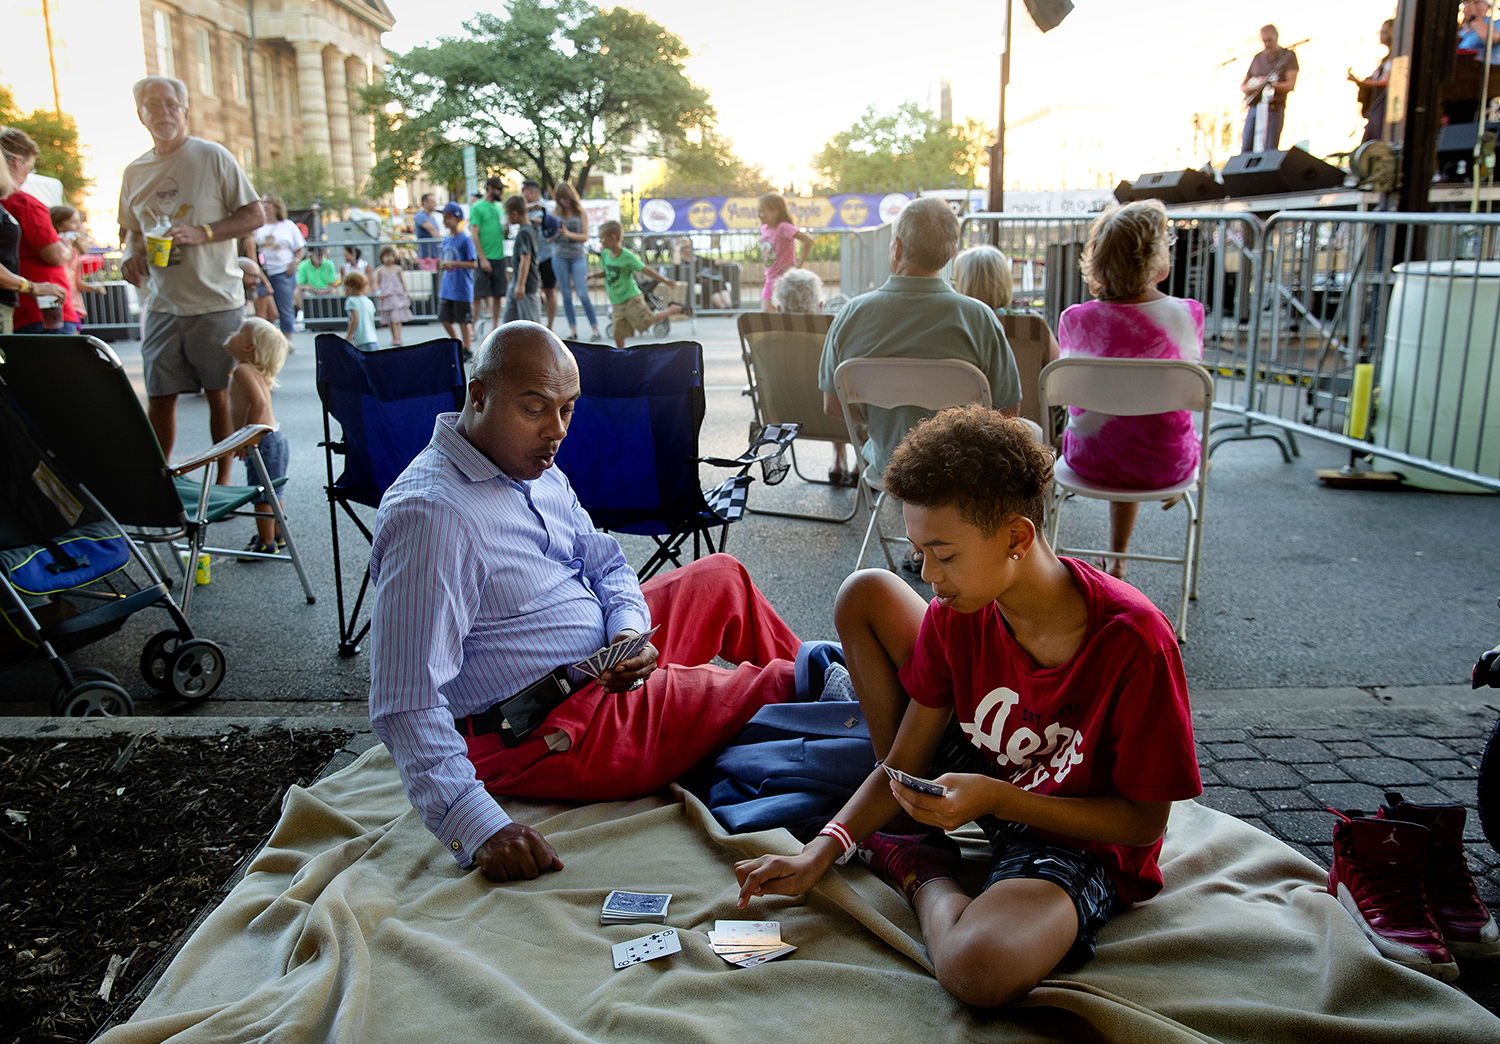 Bernard Coffey and his son Aaron enjoy a game of Gin Rummy during the ÒAmaranth AppleÓ Music & Food Fest downtown July 14. Amy Benton plays on stage behind them. Ted Schurter/The State Journal-Register